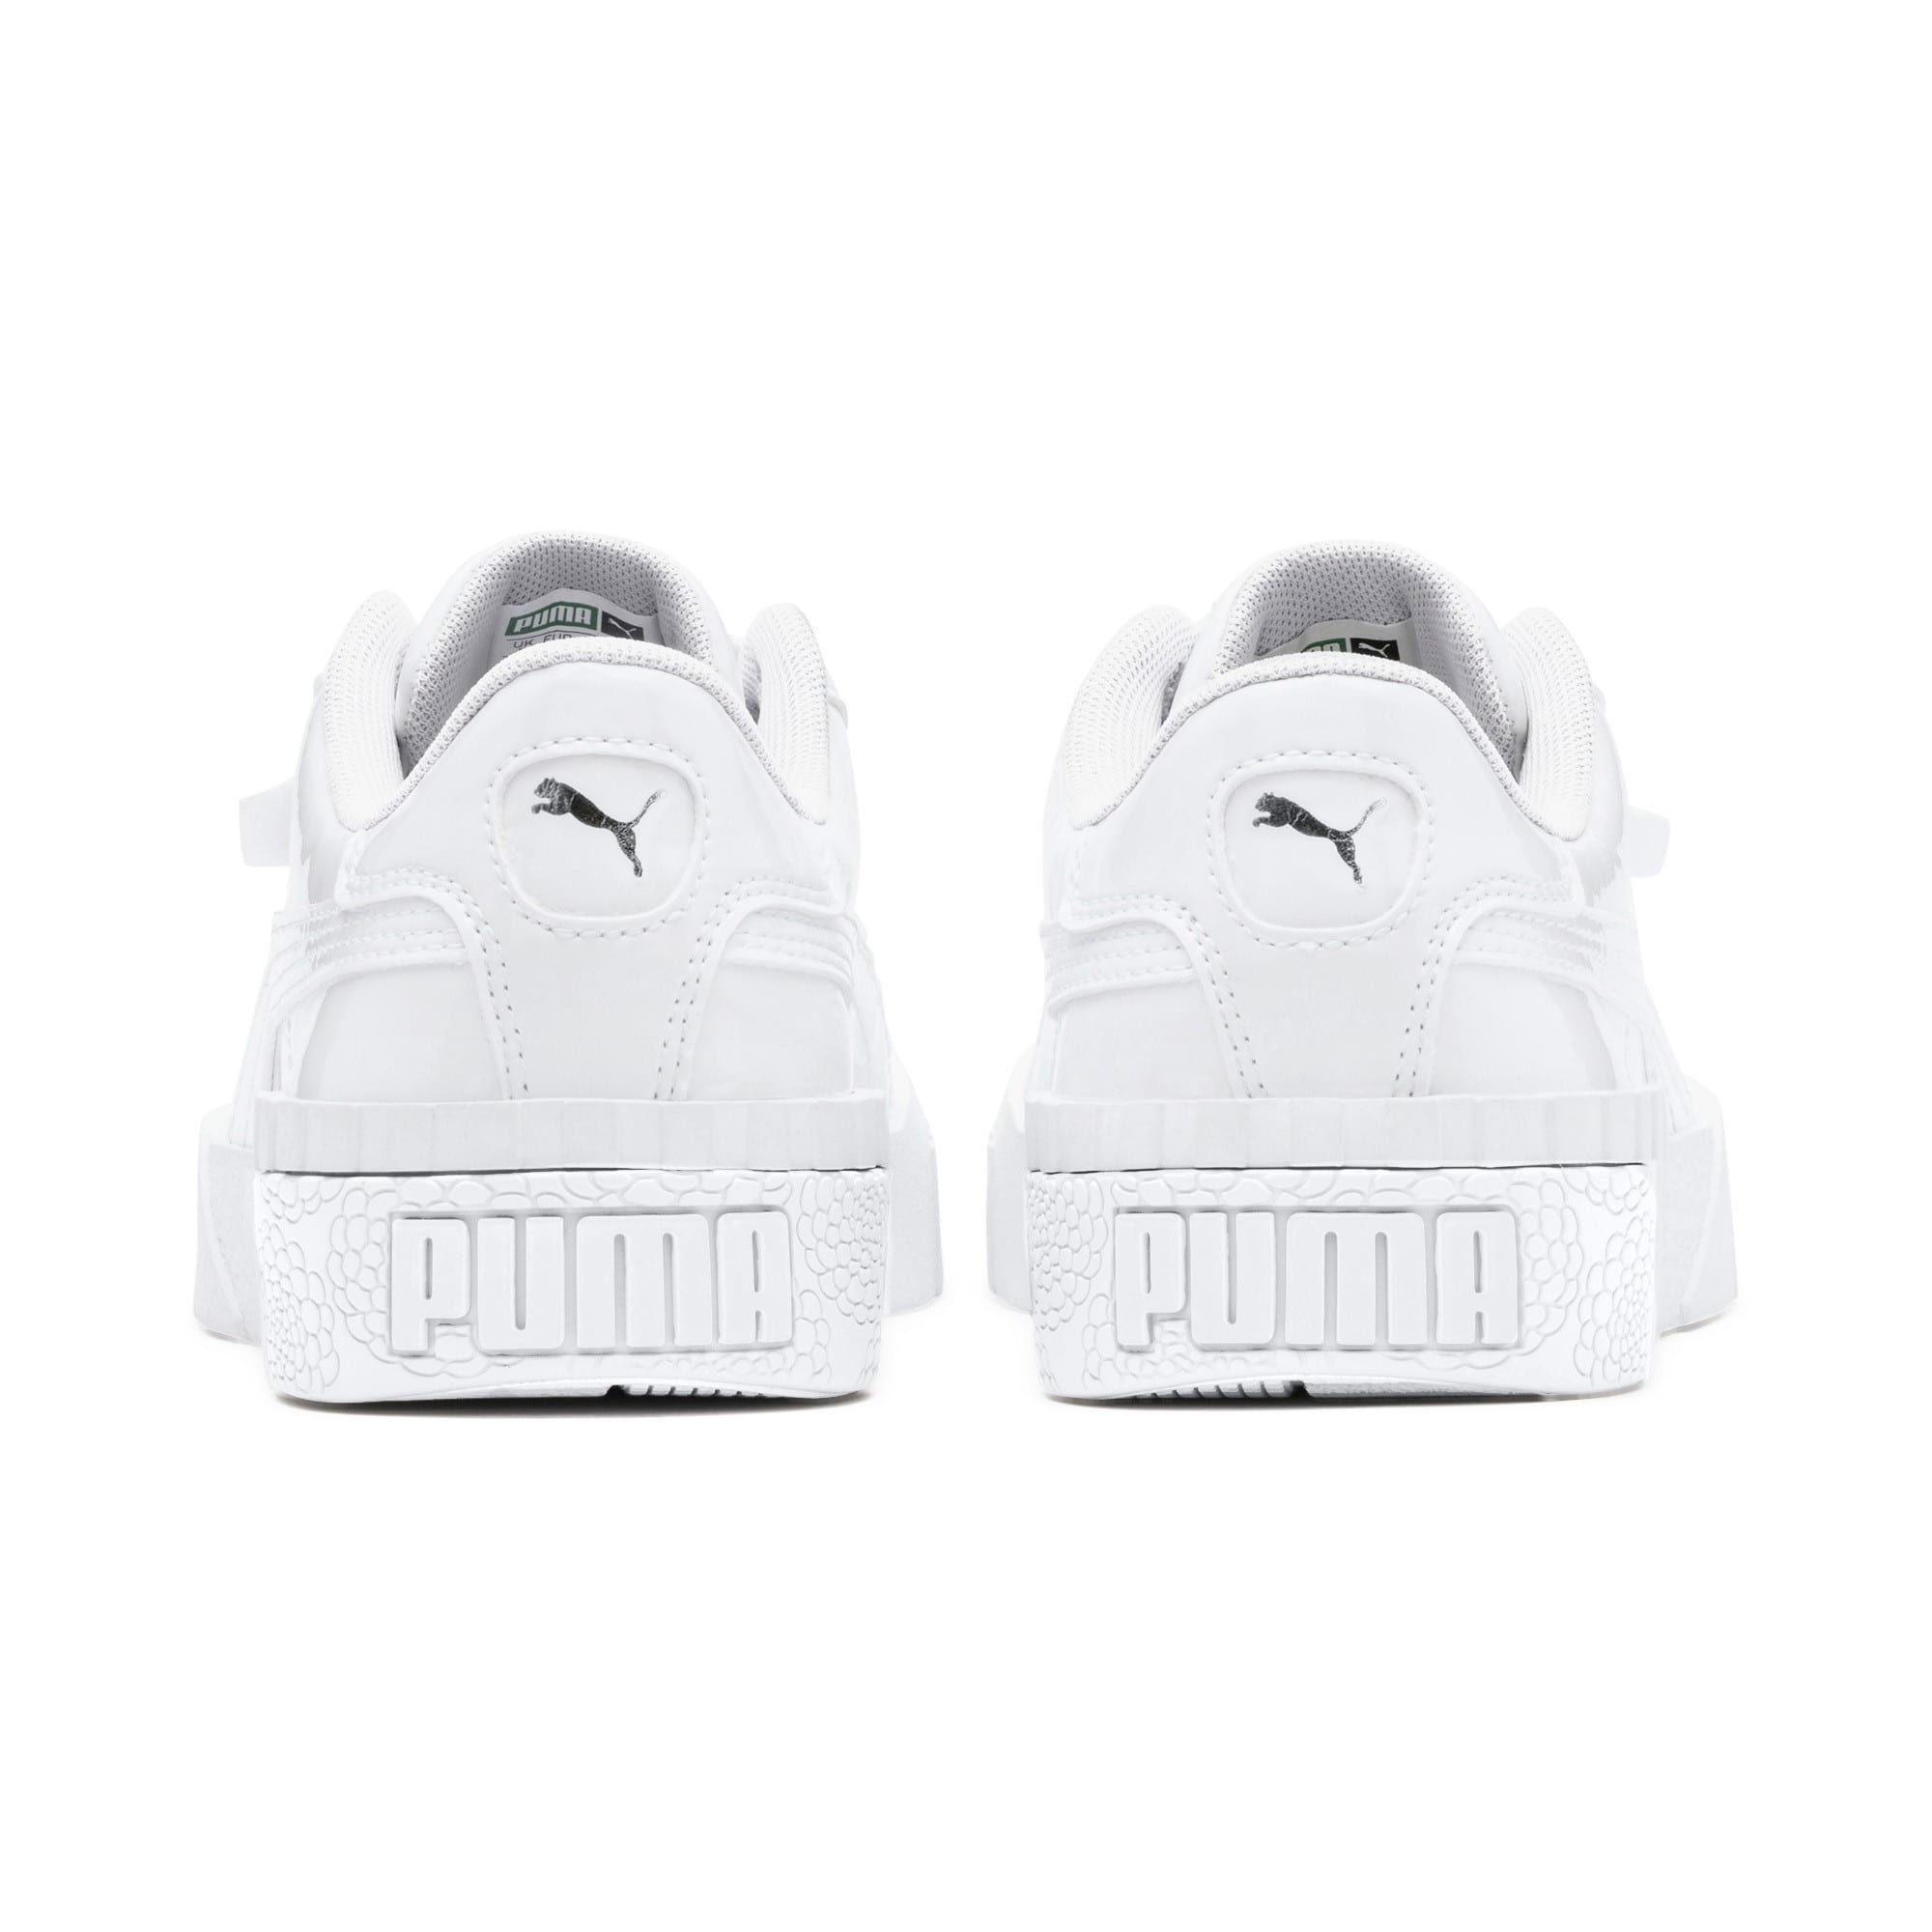 Thumbnail 3 of Basket Cali Patent Youth, Puma White-Puma White, medium